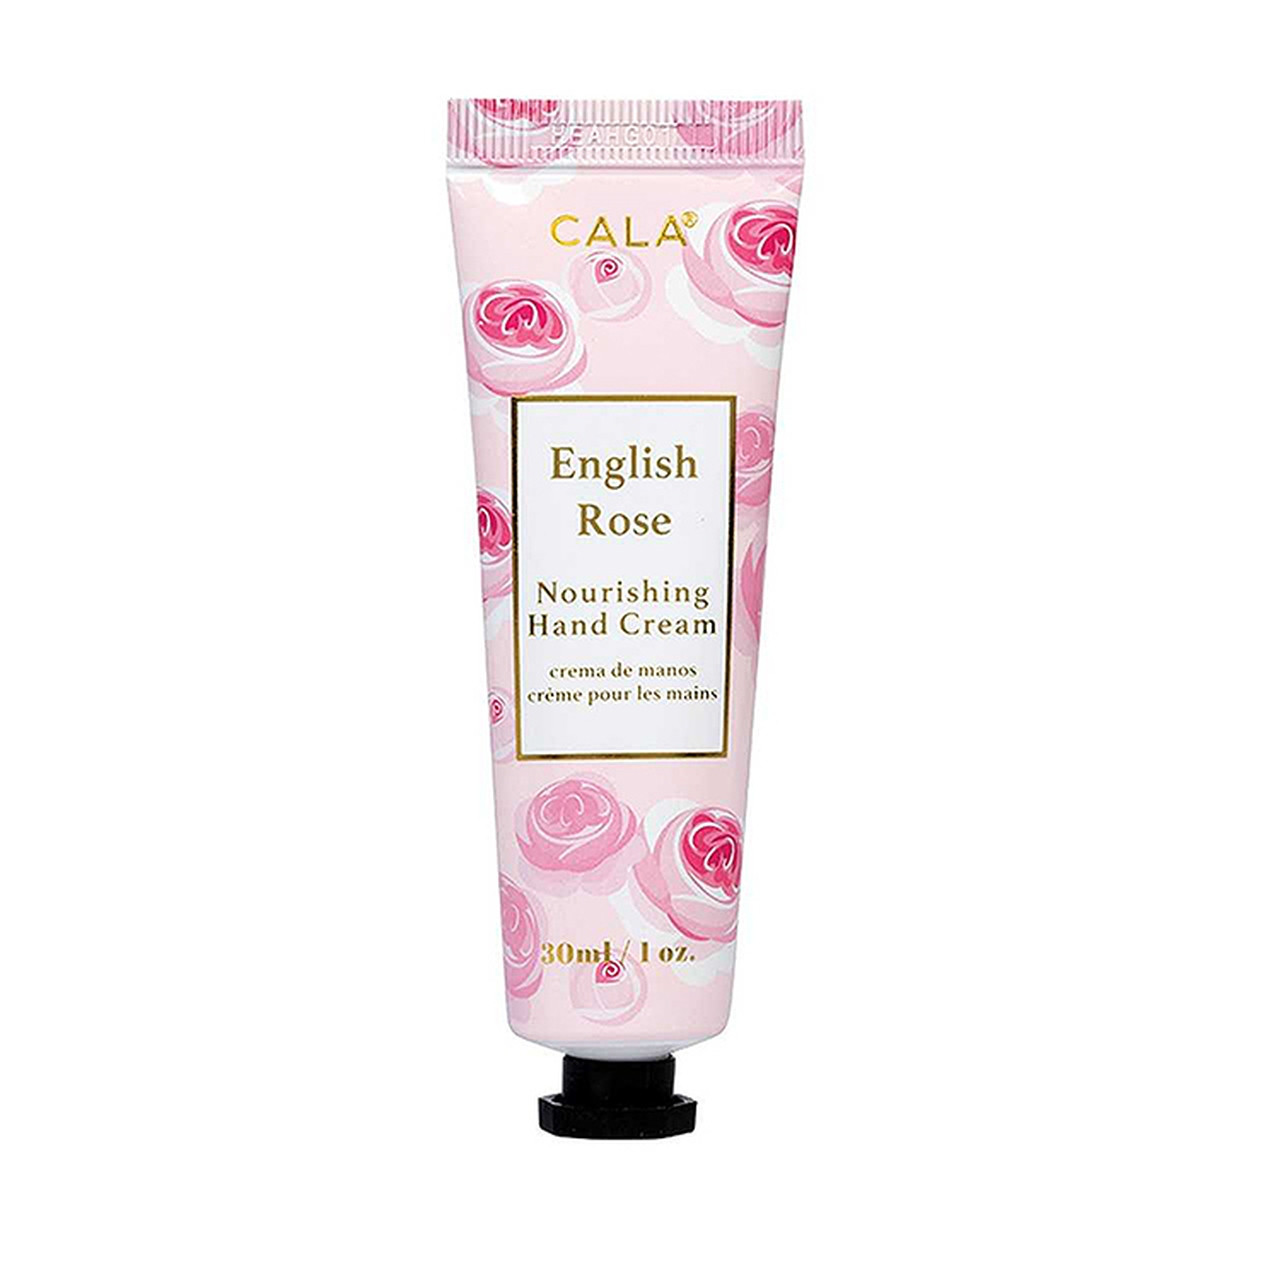 CALA ENGLISH ROSE HAND CREAM -67623